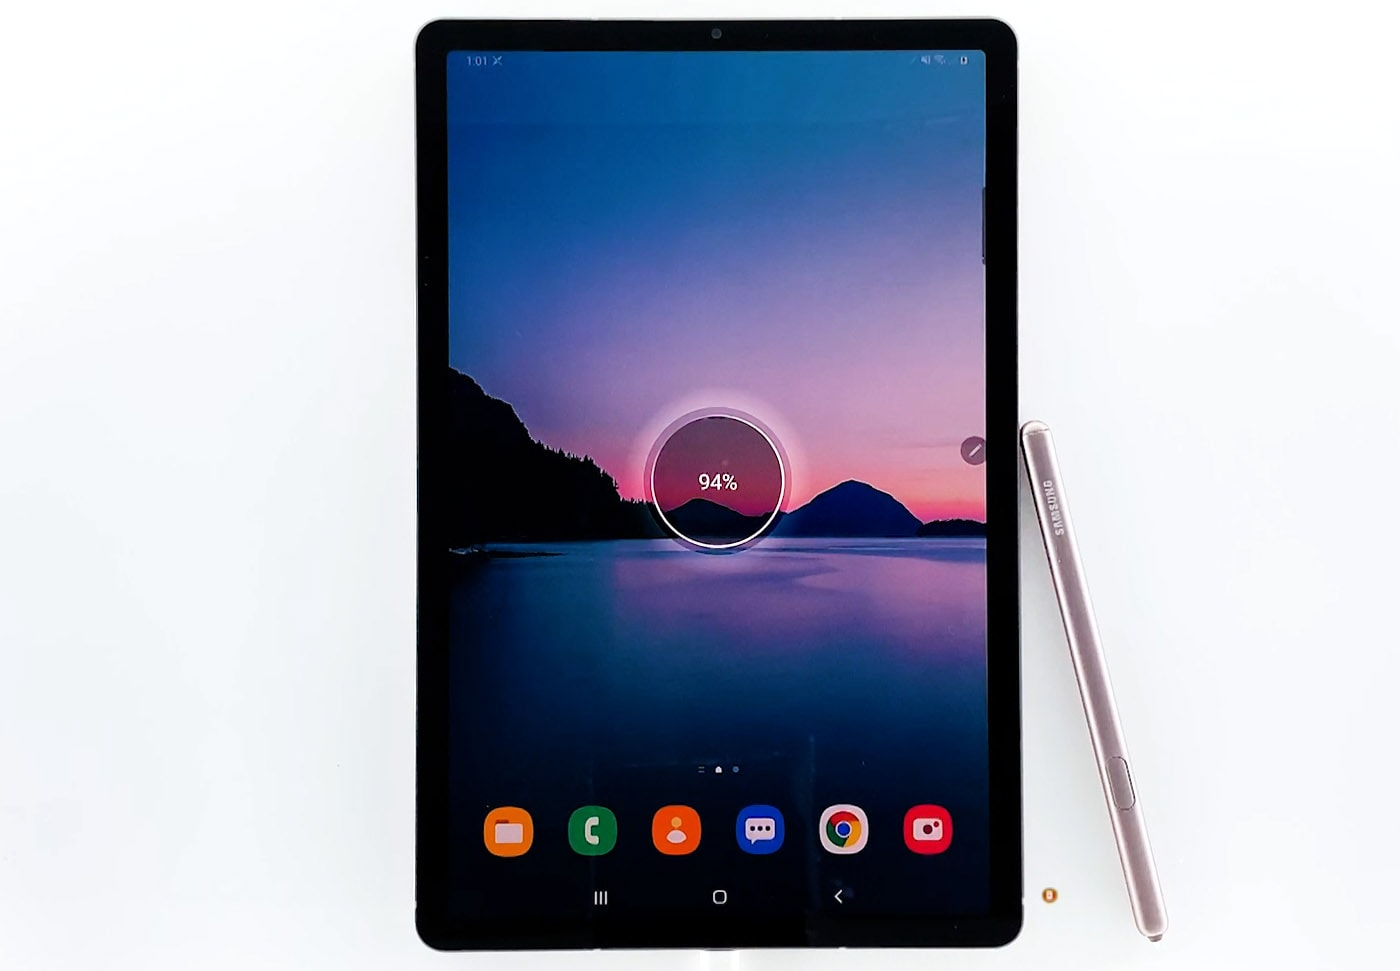 galaxy tab s6 won't charge charging